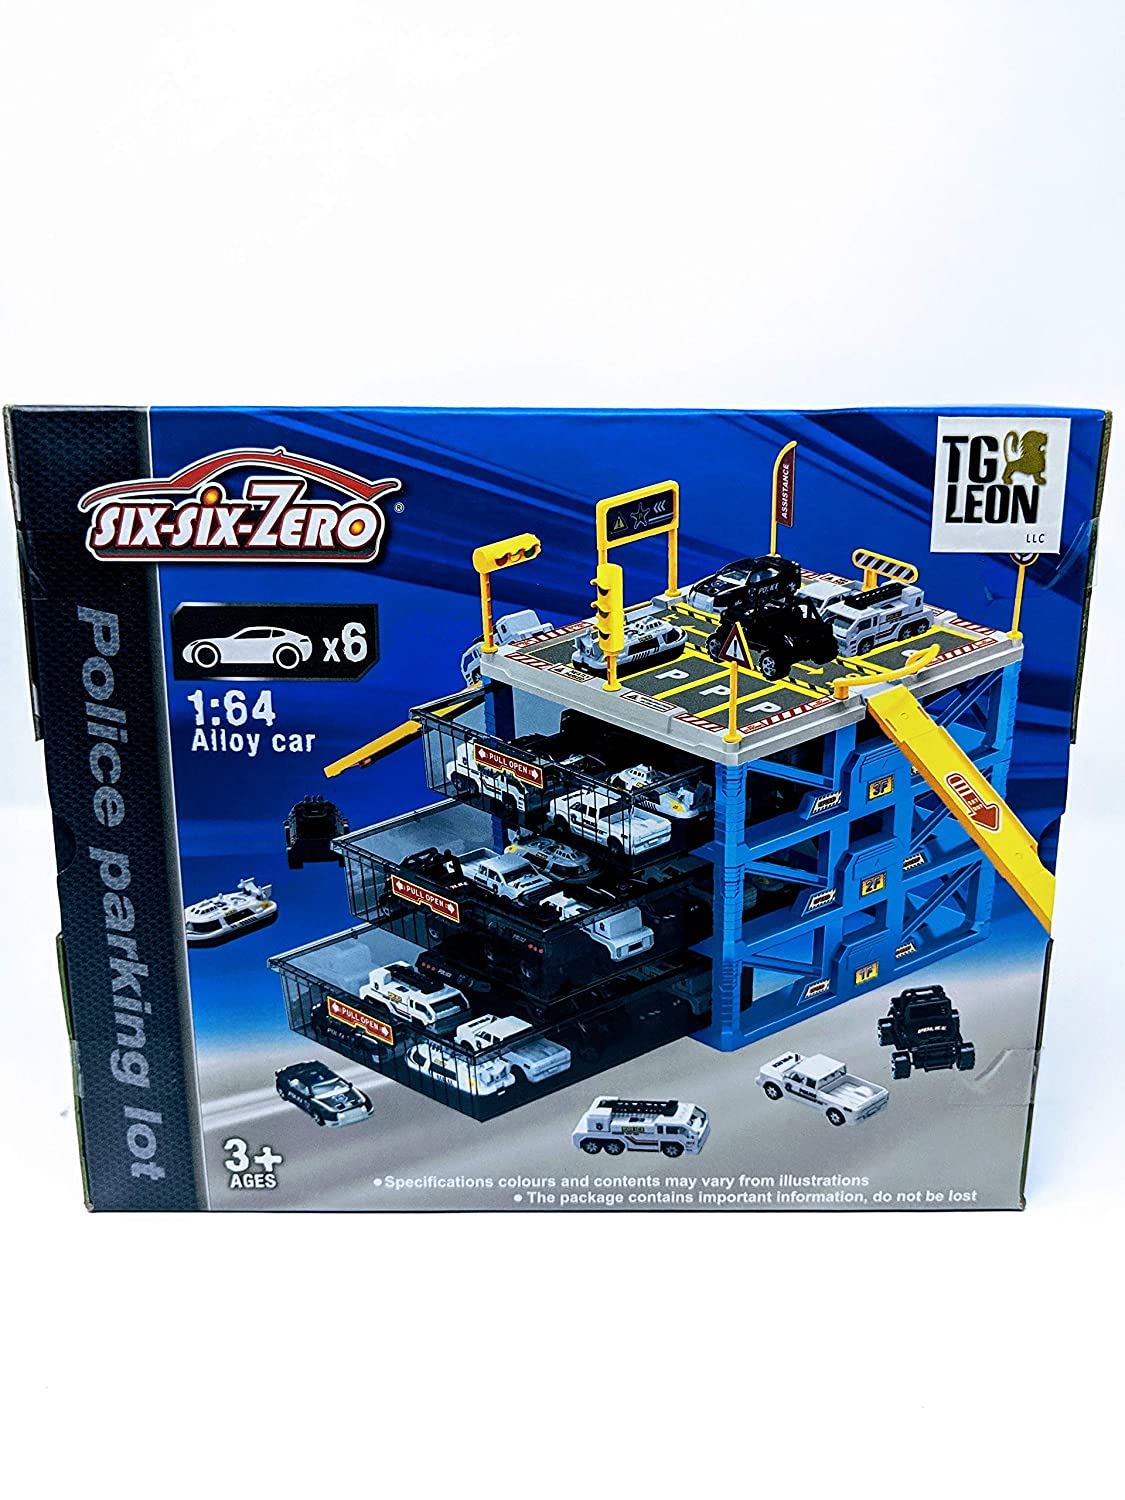 Portable Parking Garage >> Leon S Toys Police Parking Lot Garage 6 Cars Included Car Portable Storage For Hotwheels And Matchbox